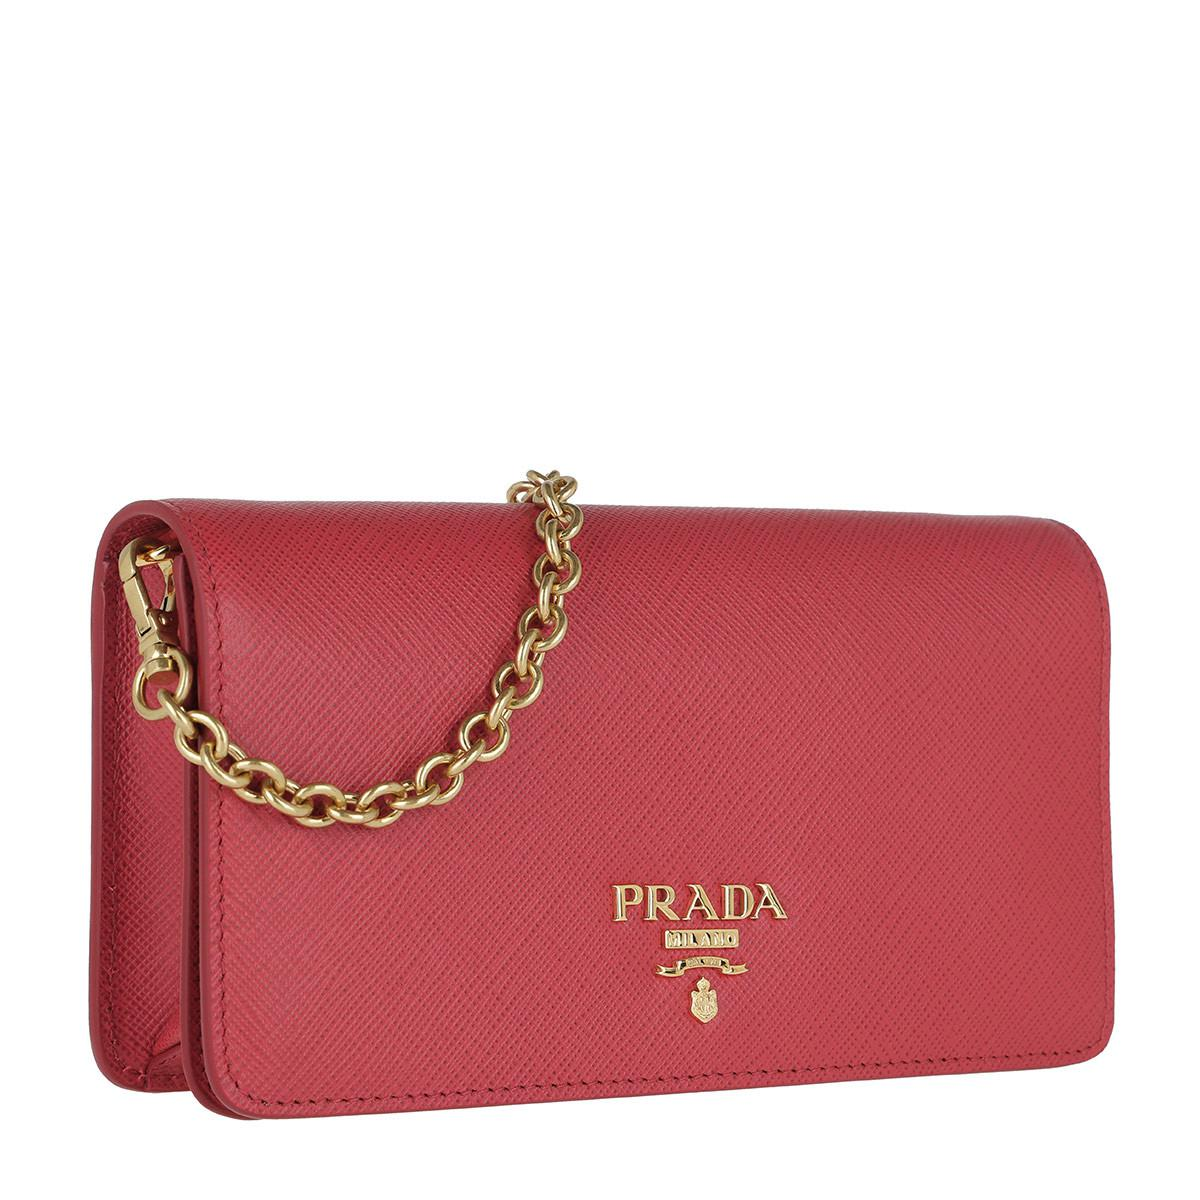 9c3b0adf63 ... discount prada red logo wallet on chain saffiano leather peonia lyst.  view fullscreen 91a18 0b180